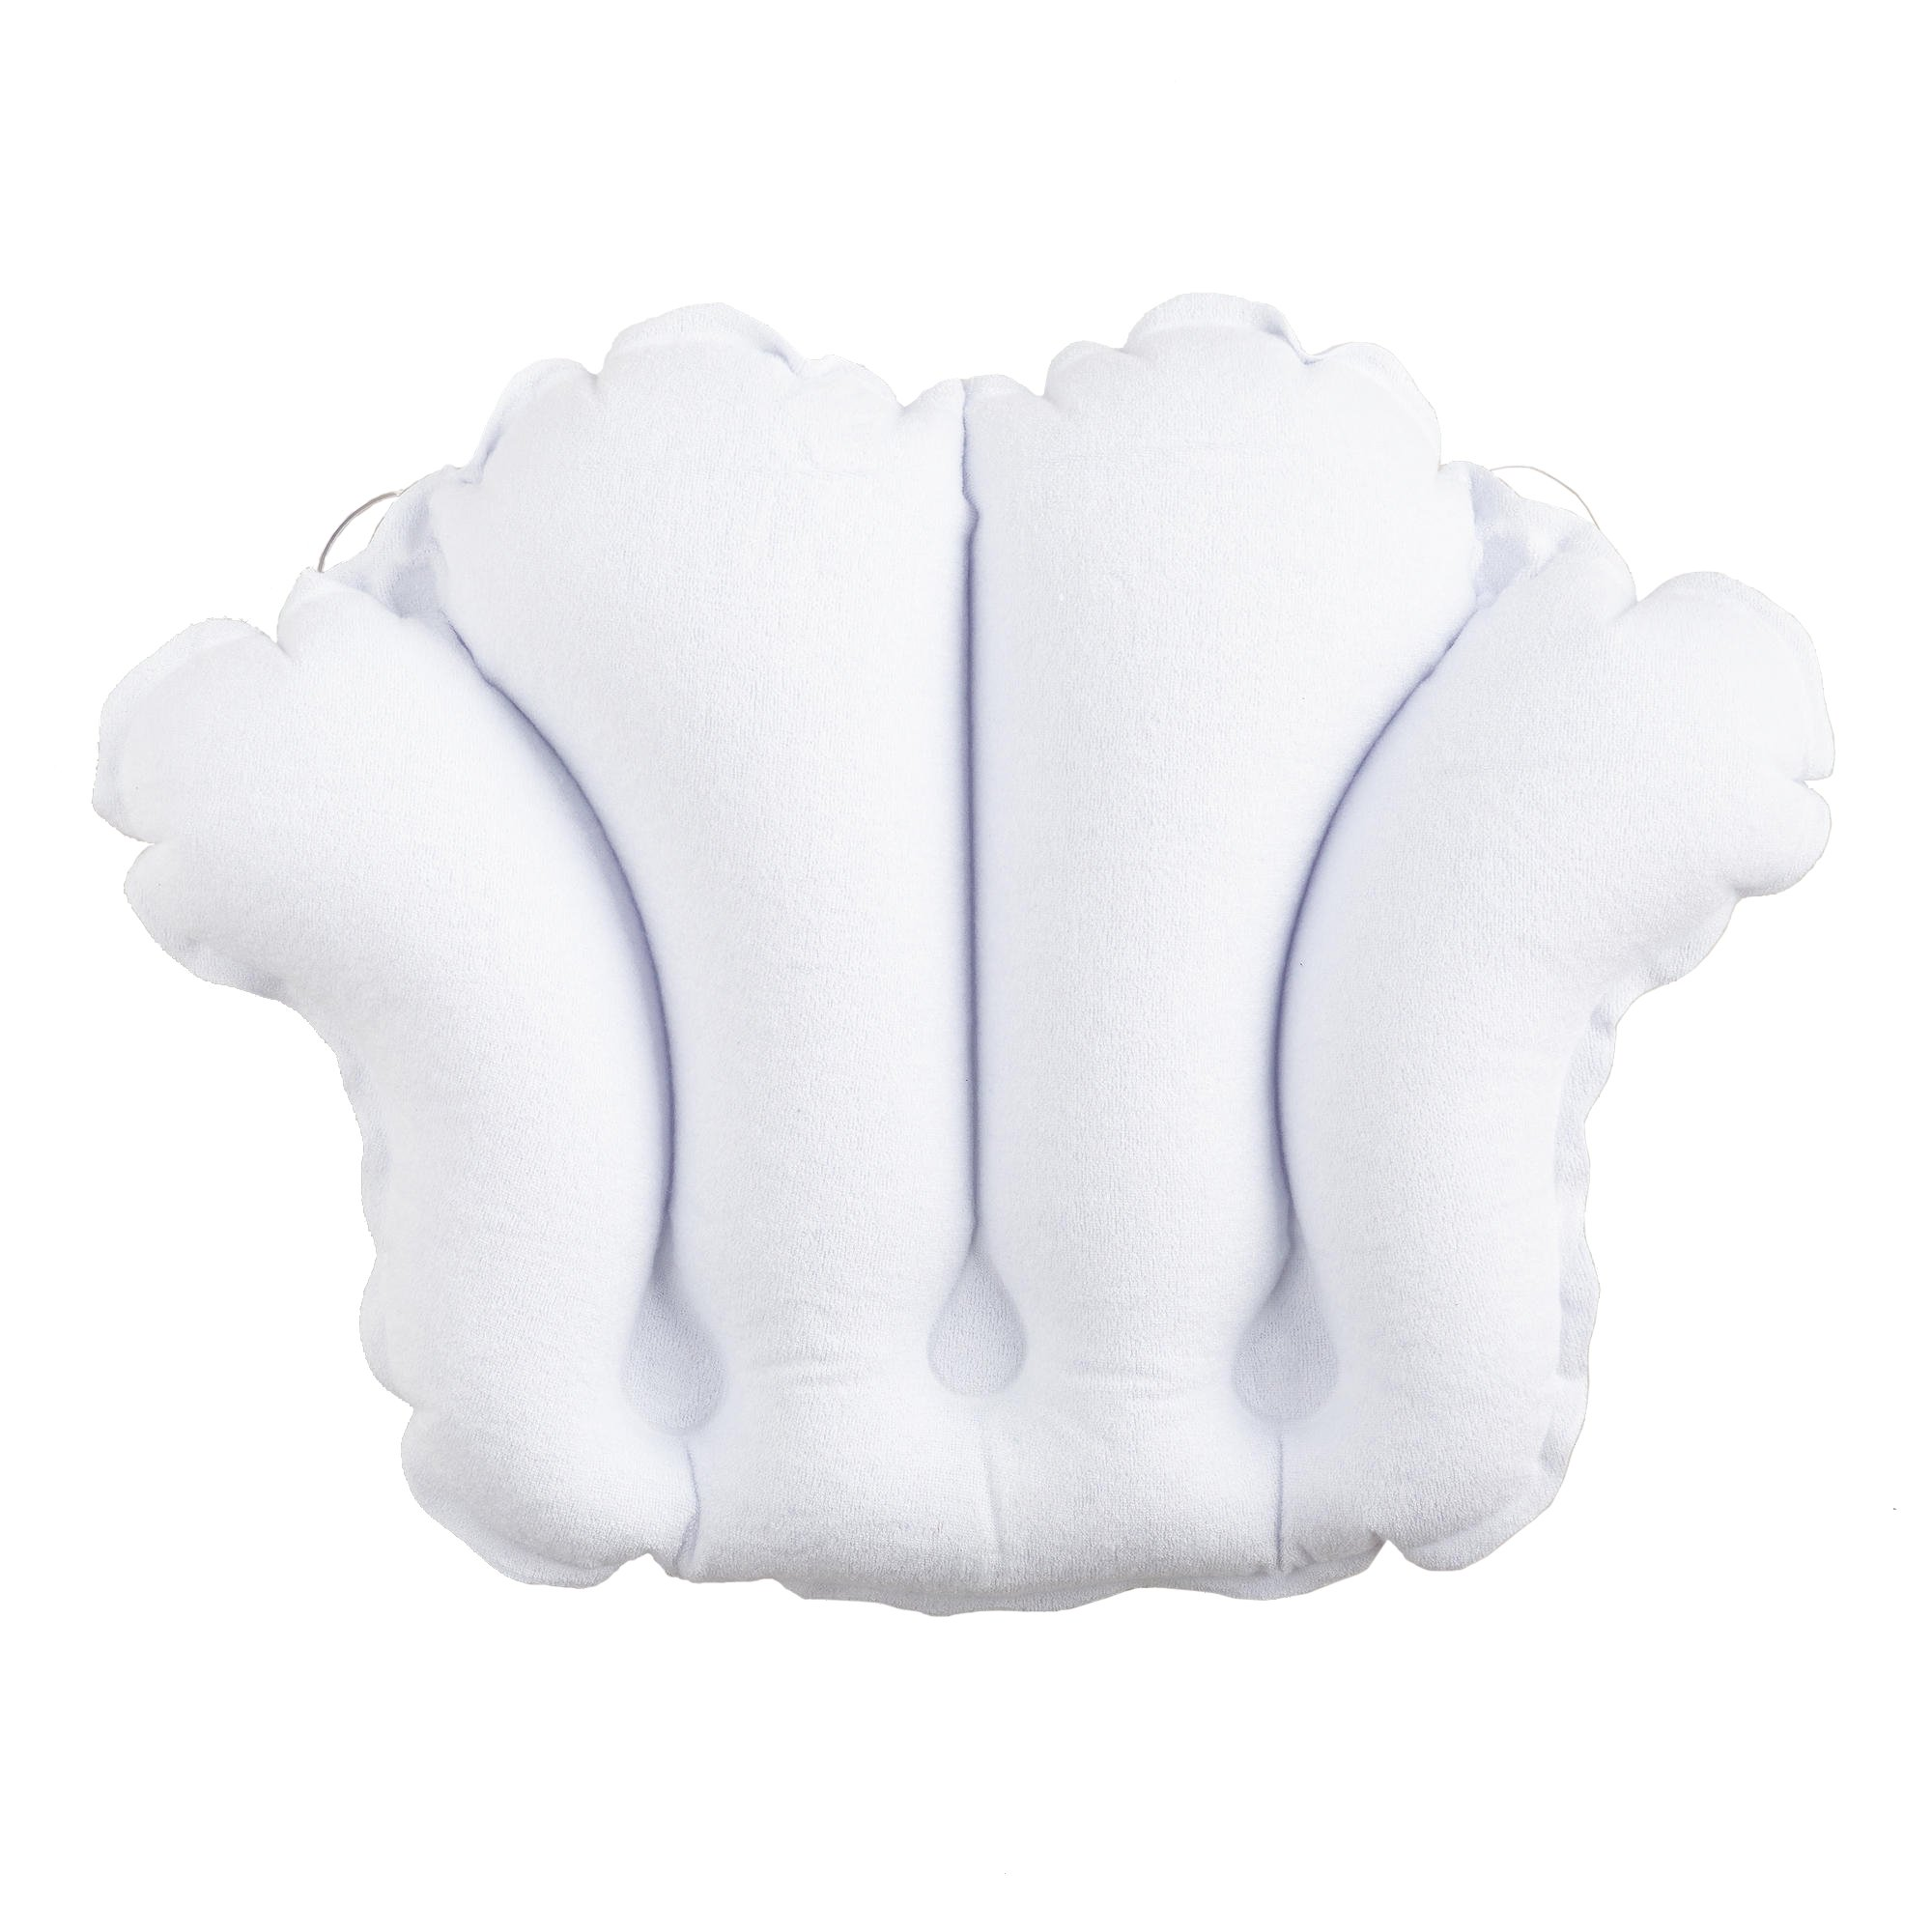 Cheap White Bath Pillow, find White Bath Pillow deals on line at ...